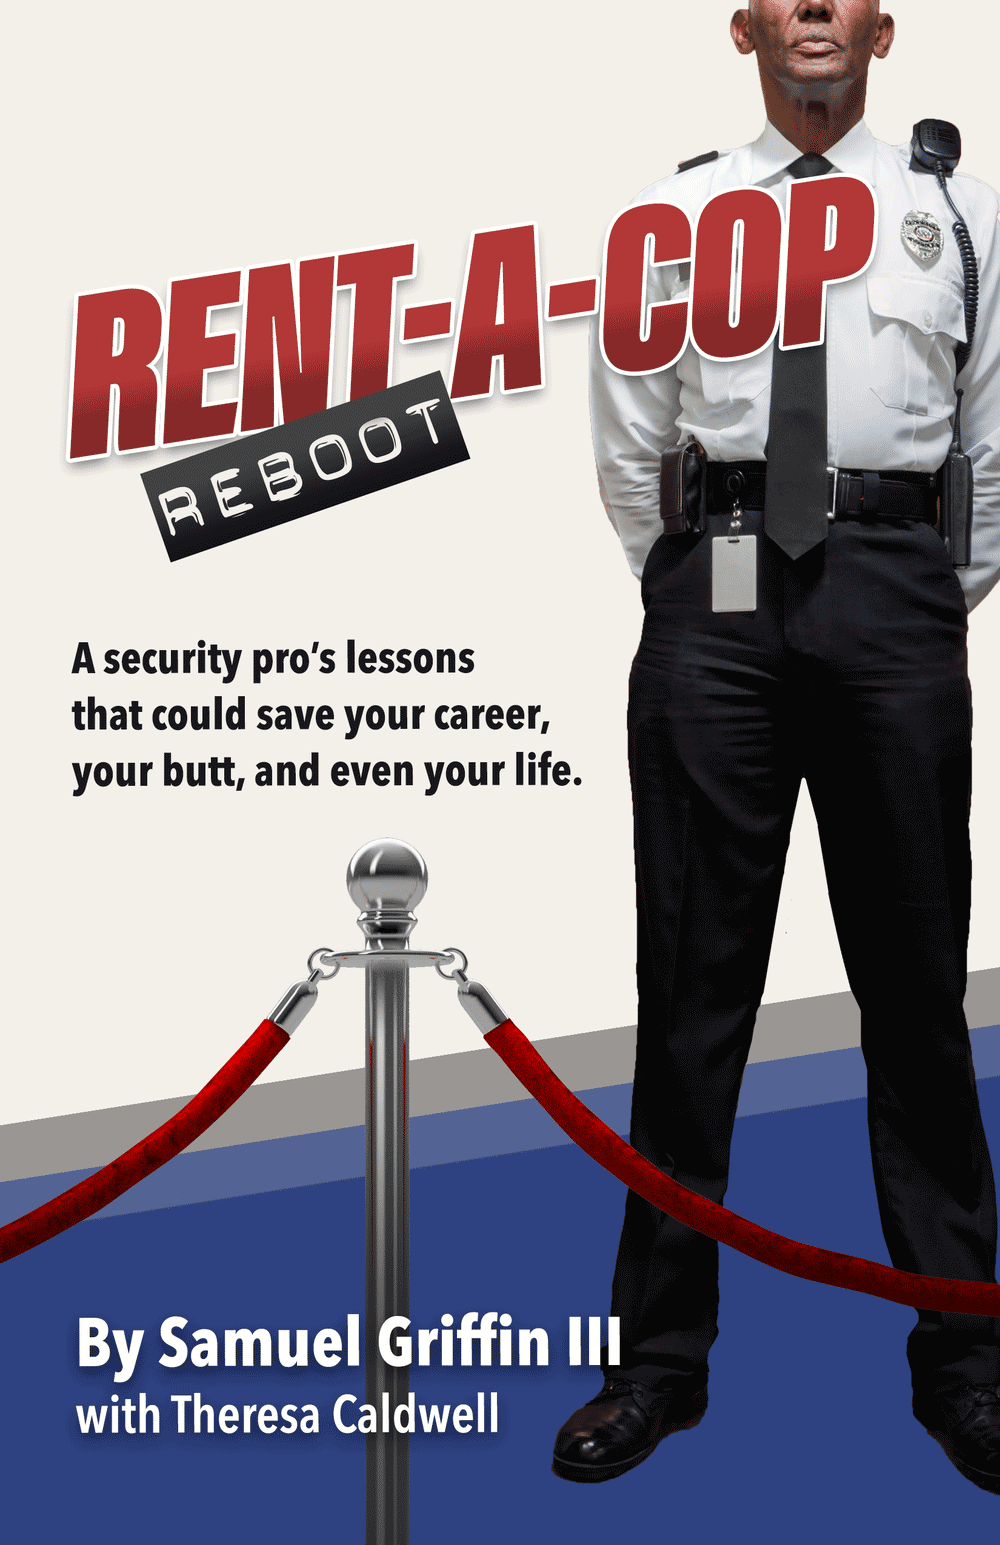 Rent-A-Cop Reboot: A security pro's lessons that could save your career, your butt, and even your life